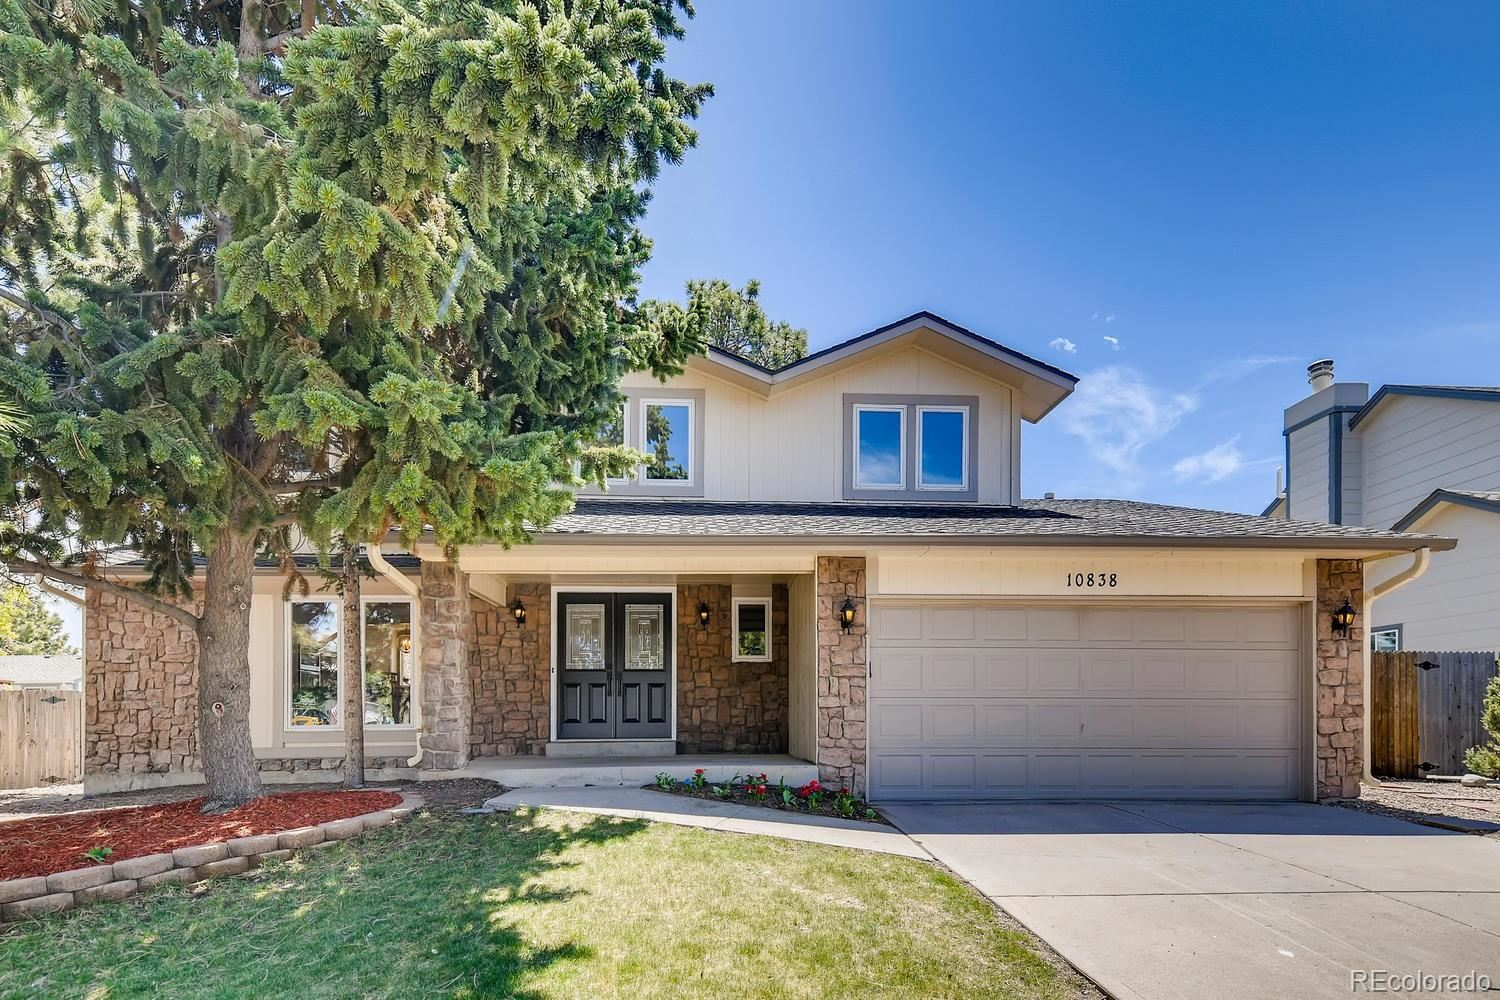 10838 E Maplewood Drive, Englewood, CO 80111 - #: 3564893